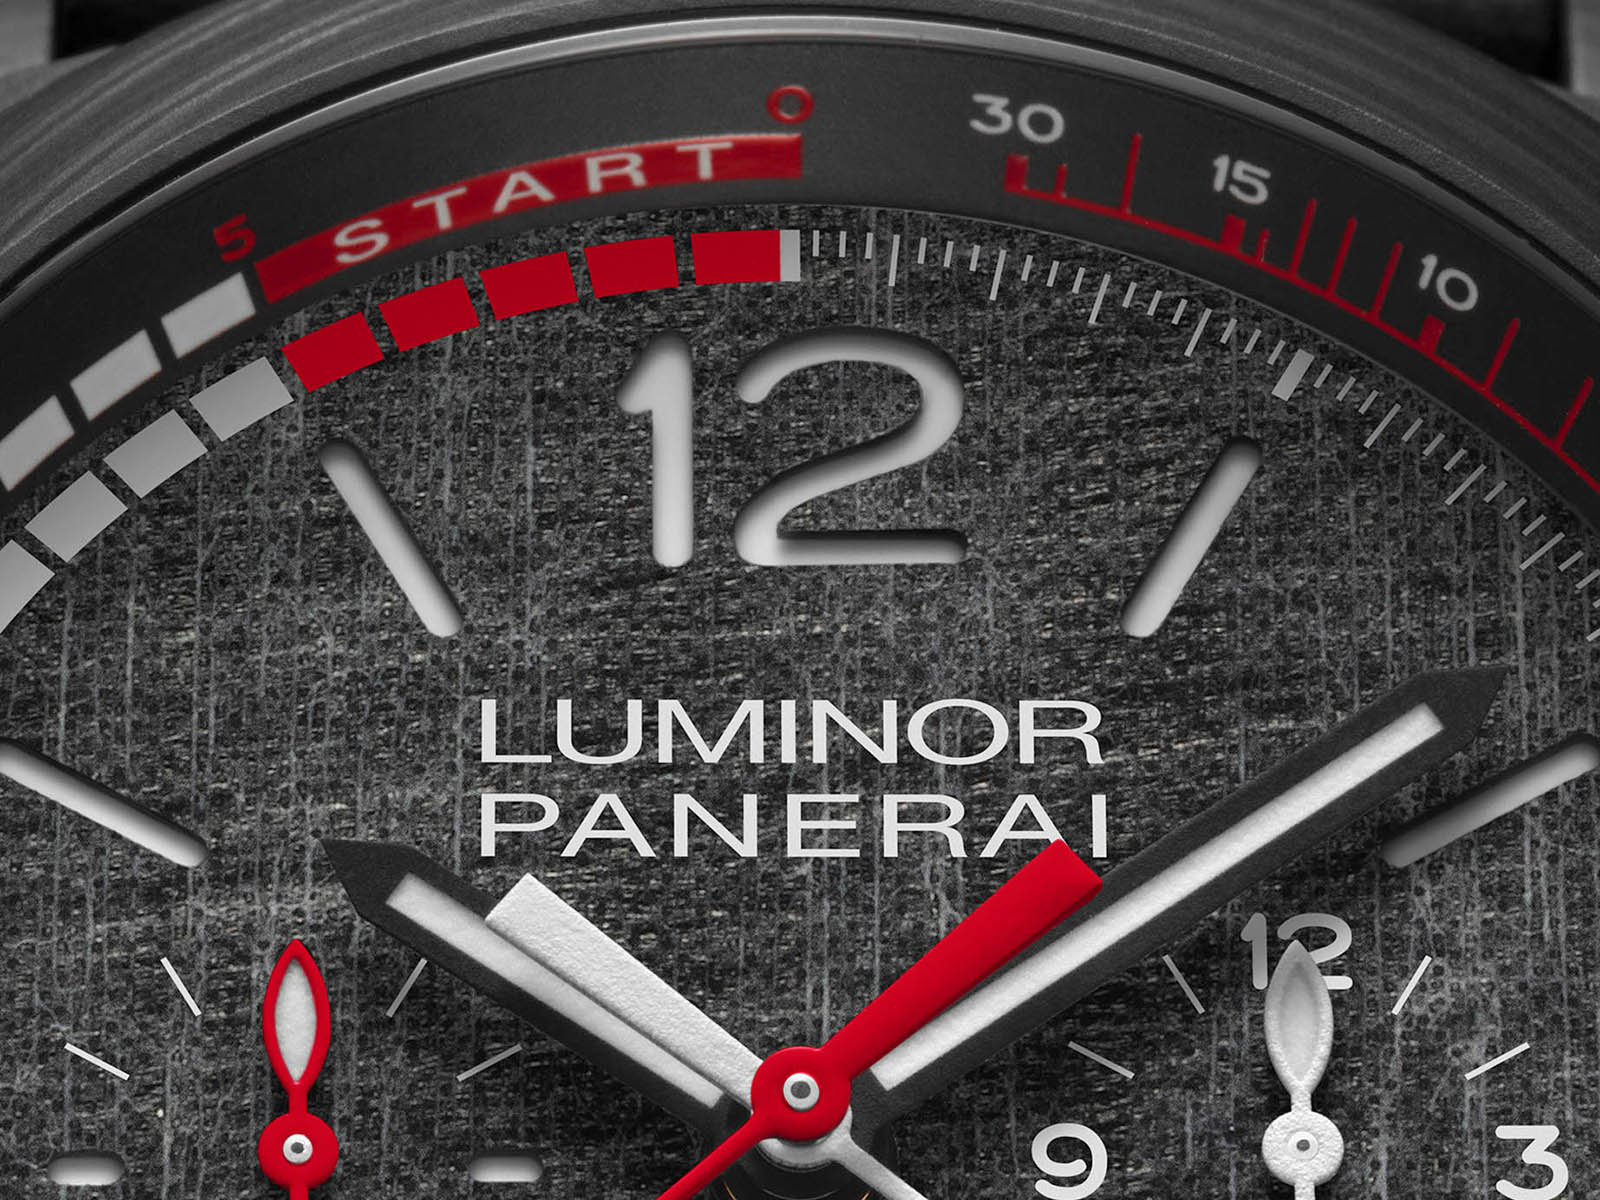 panerai-luminor-luna-rossa-4.jpg